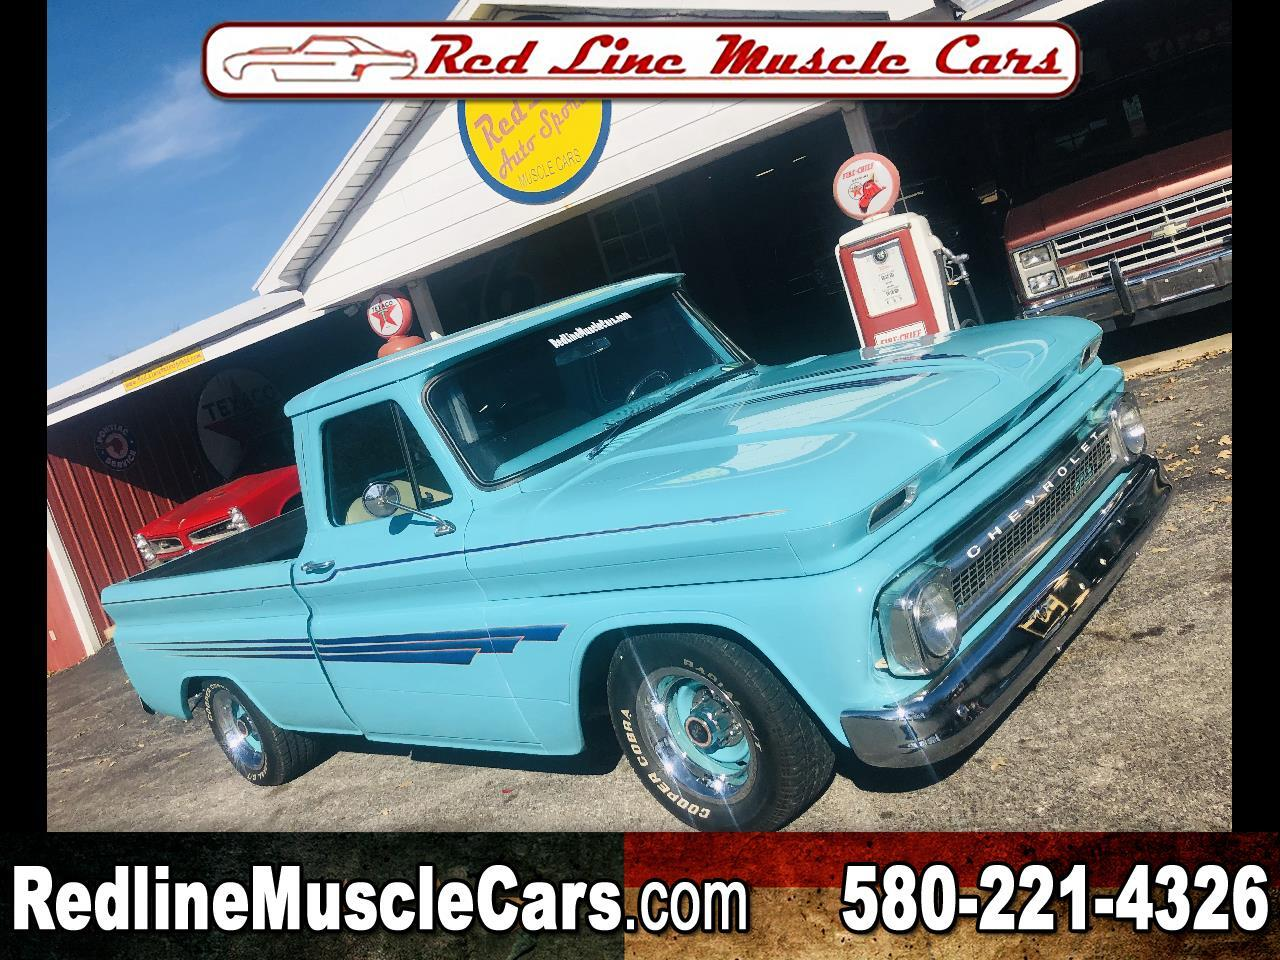 1964 Chevrolet Custom CUSTOM 10 C10 SWB BIG BACK WINDOW